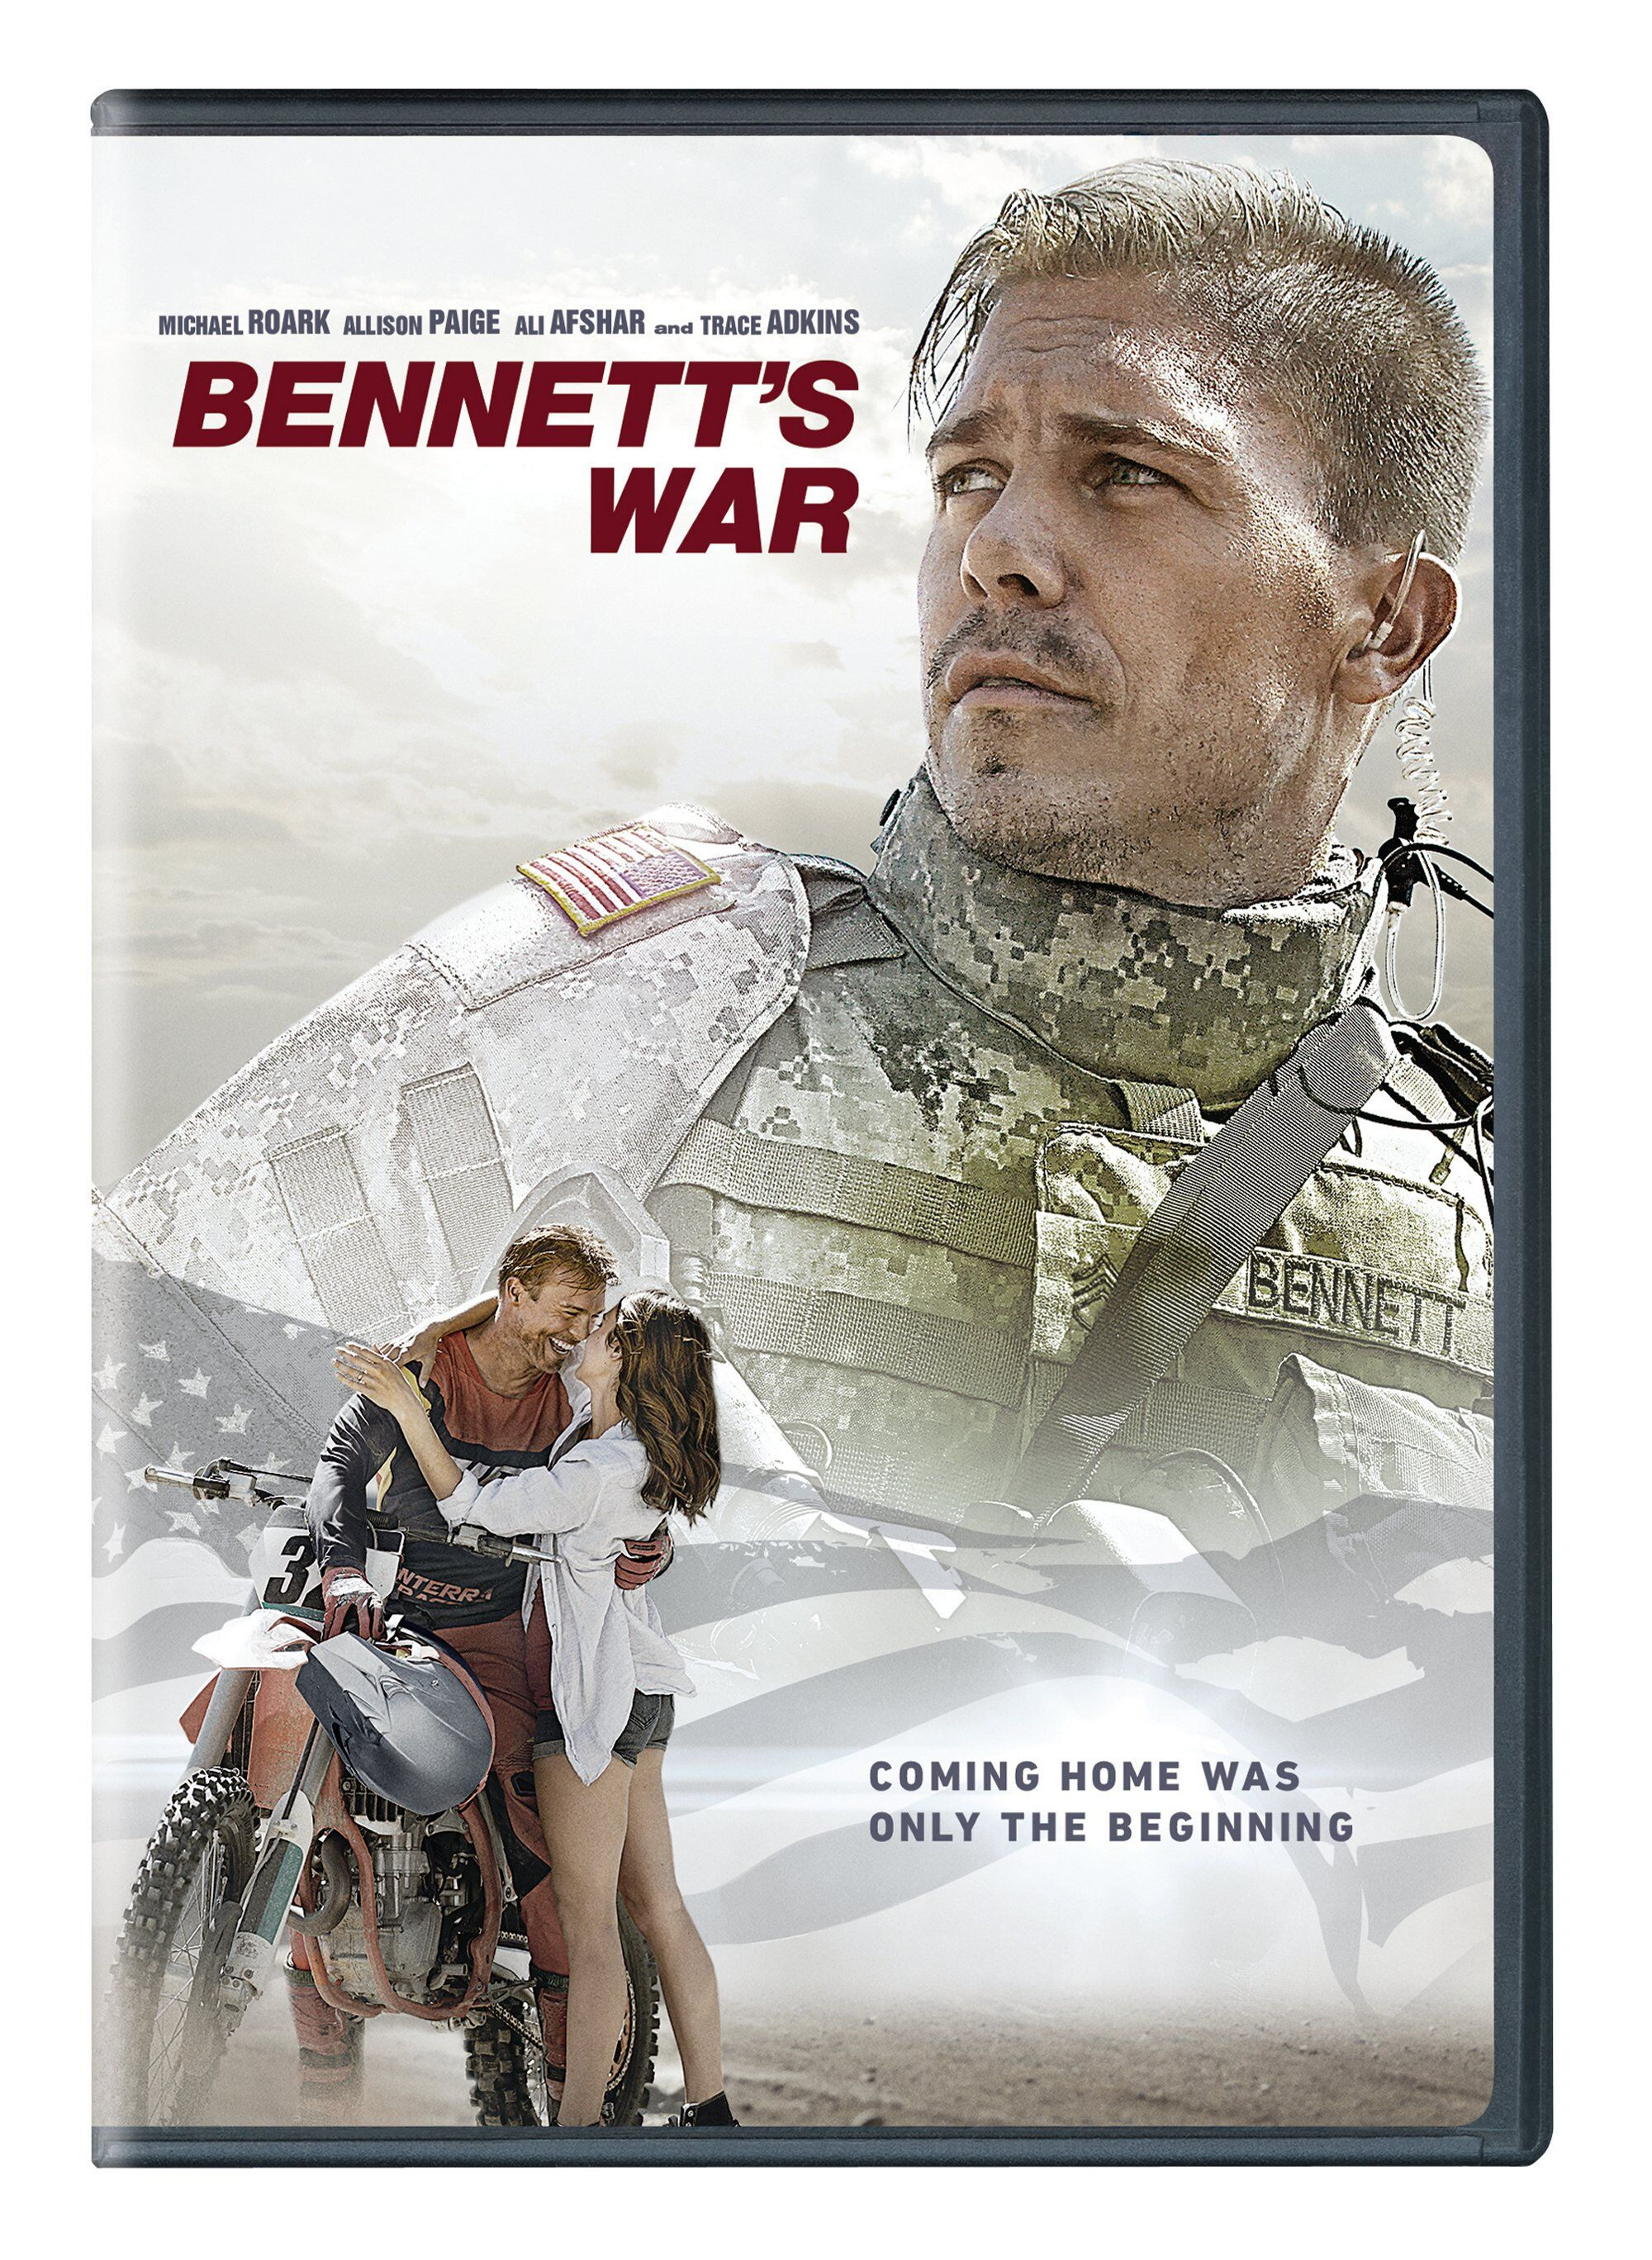 Own Bennett S War On Dvd On December 3 And Digital On November 12 Justlovemovies Com